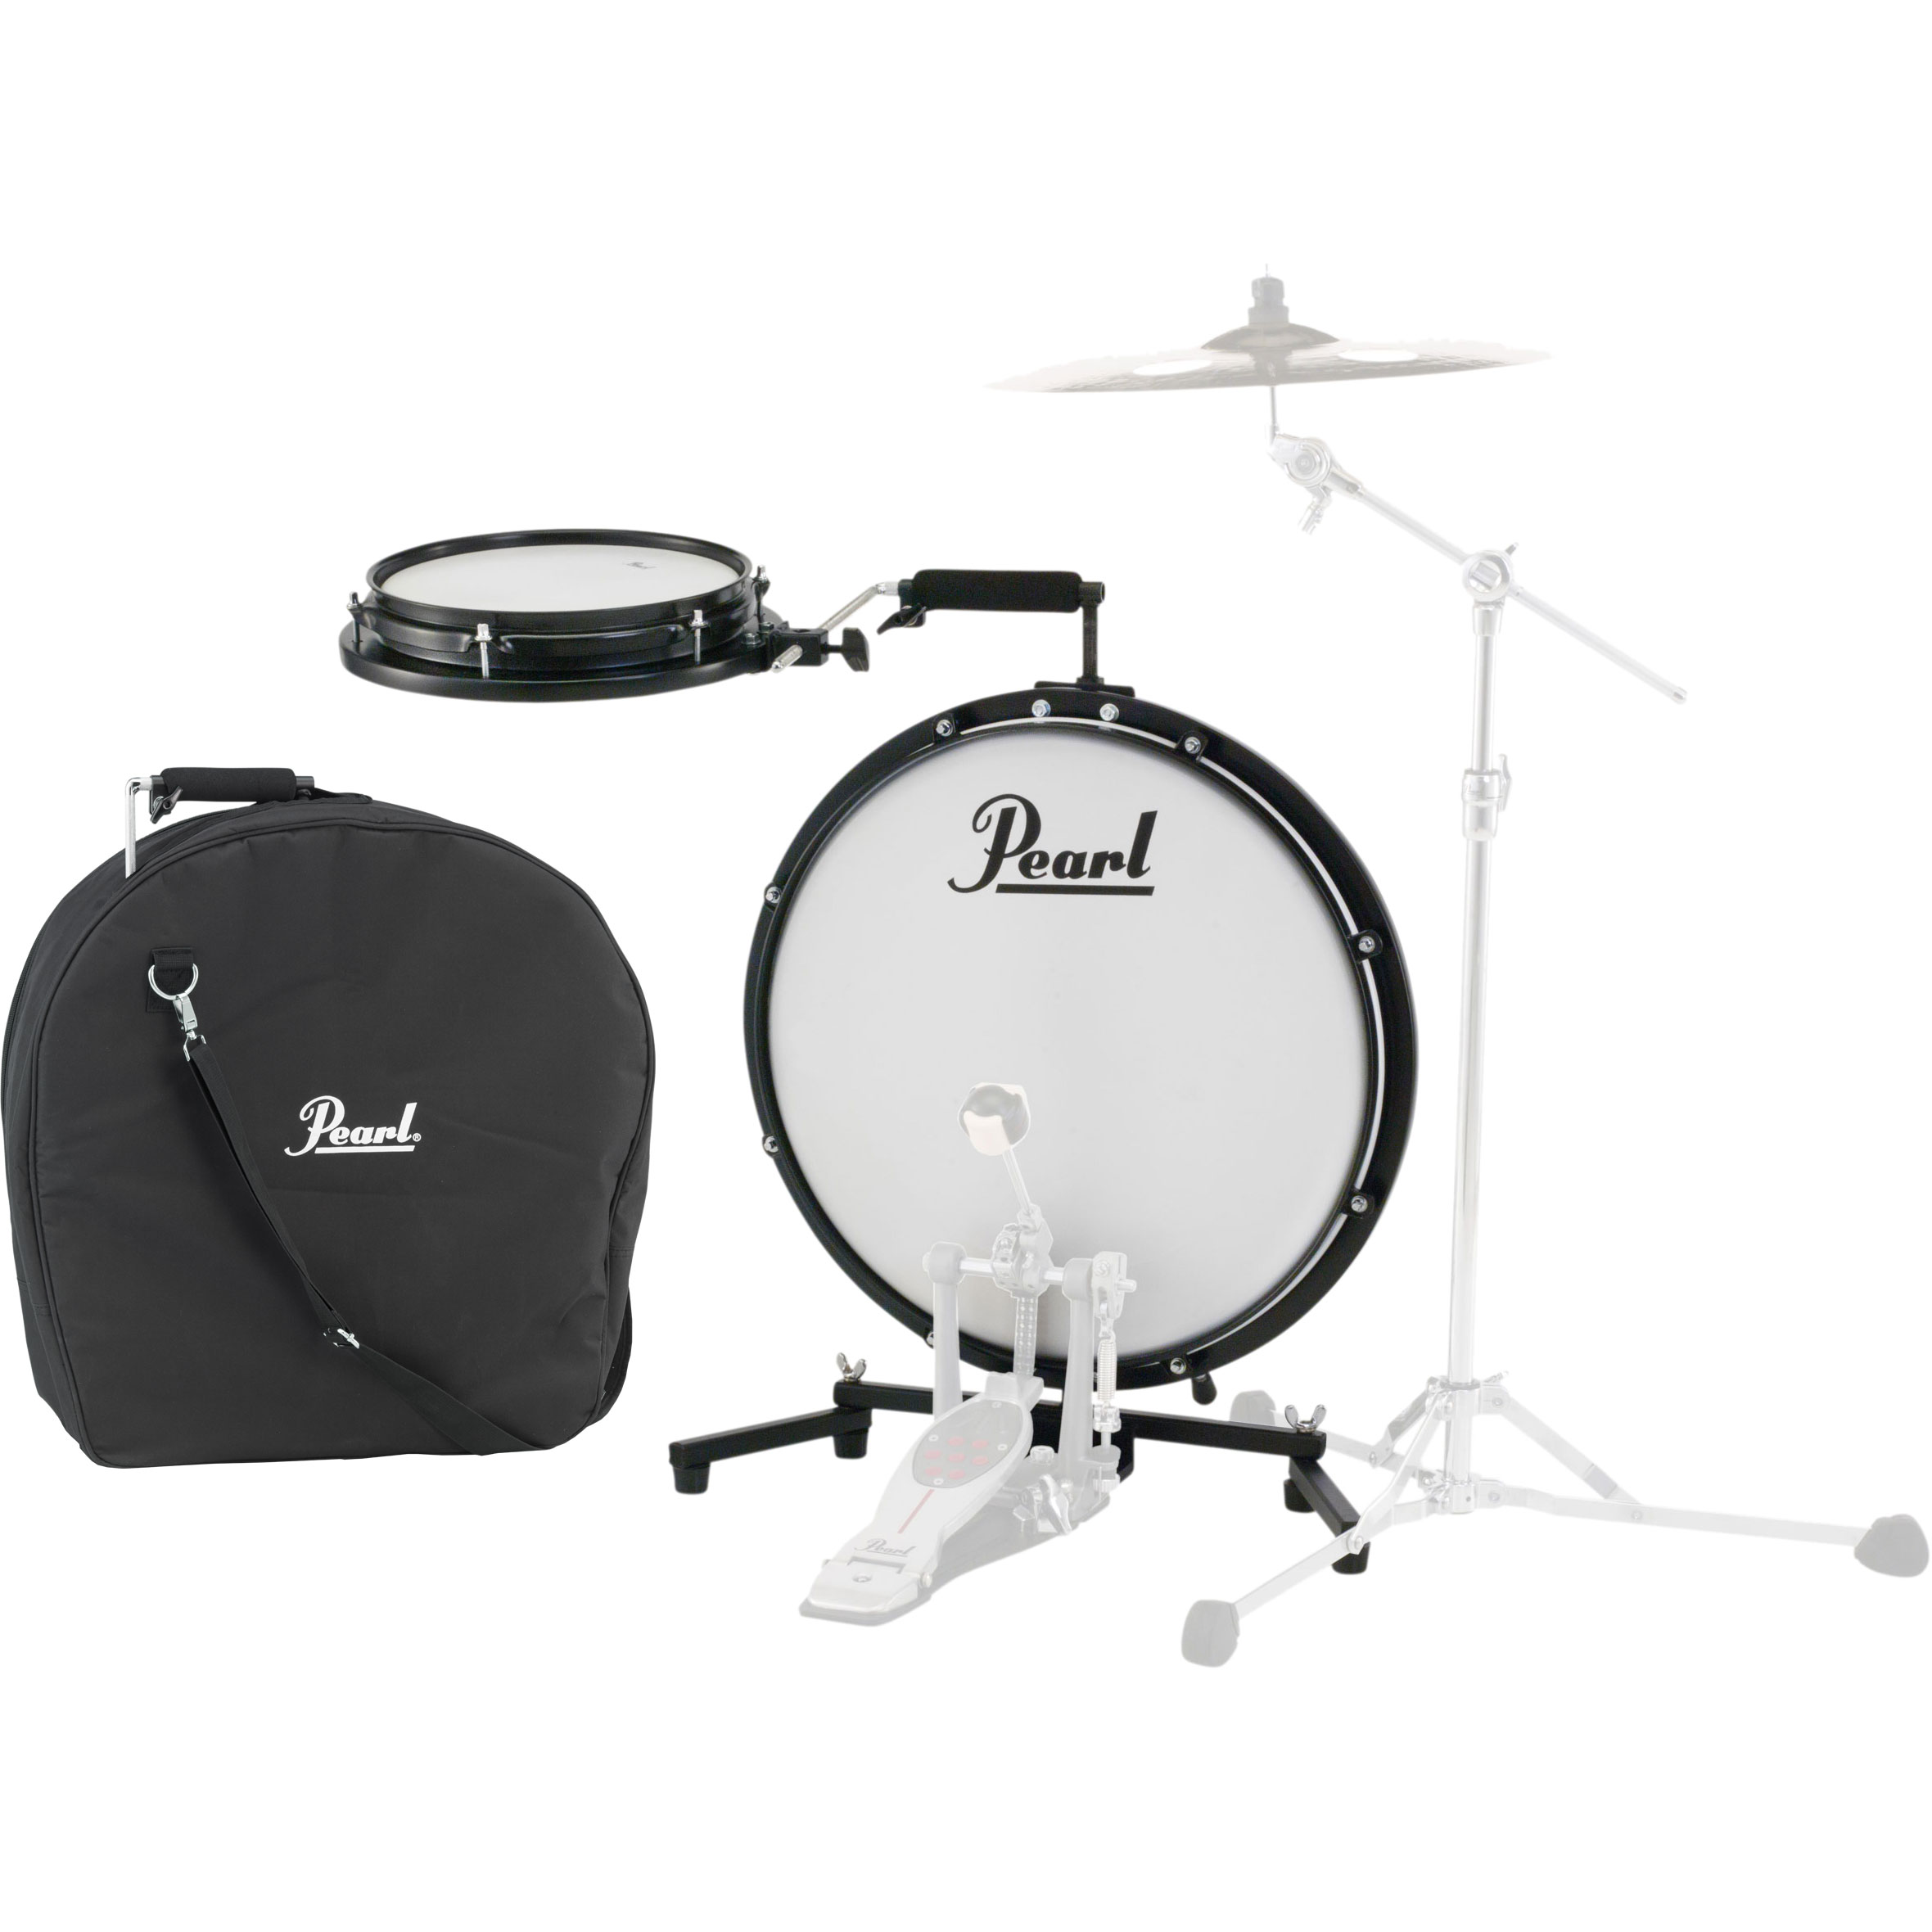 "Pearl Compact Traveler 2-Piece Drum Set (18"" Bass, 10"" Snare) with Bag"